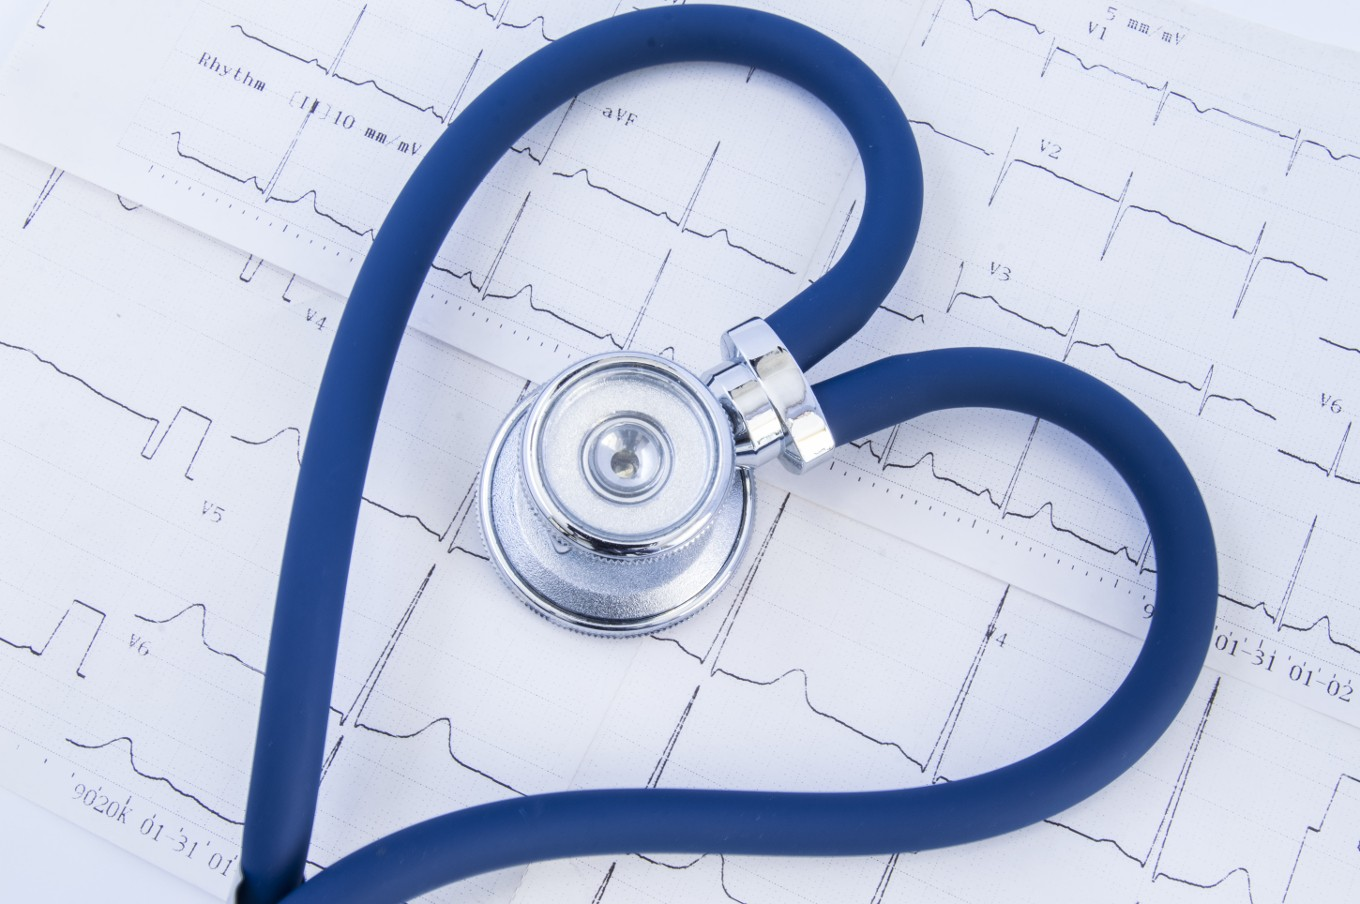 Blood type may be linked to heart disease, study suggests